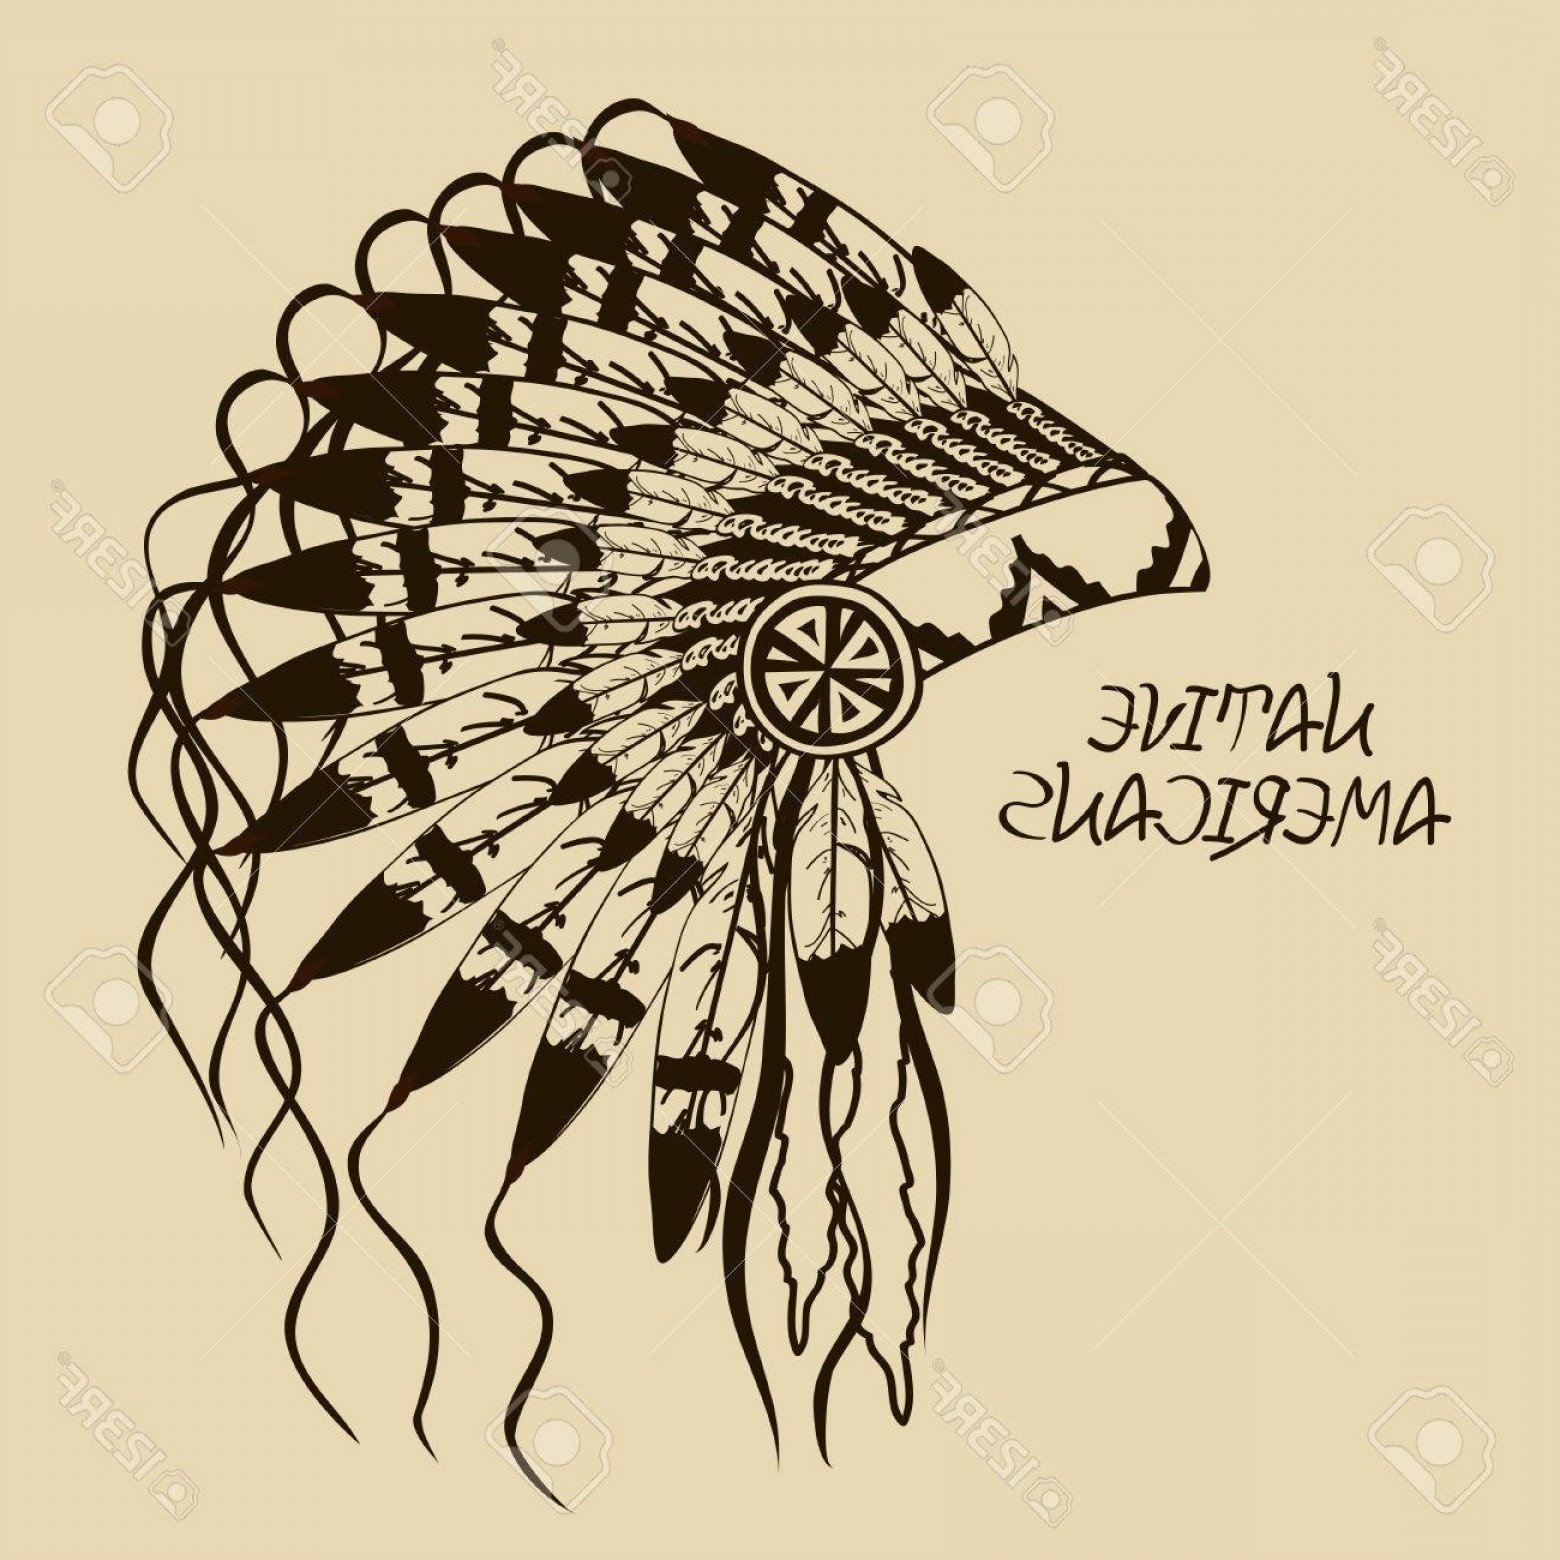 American Indian Chief Vector: Photovintage Illustration With Native American Indian Chief Headdress